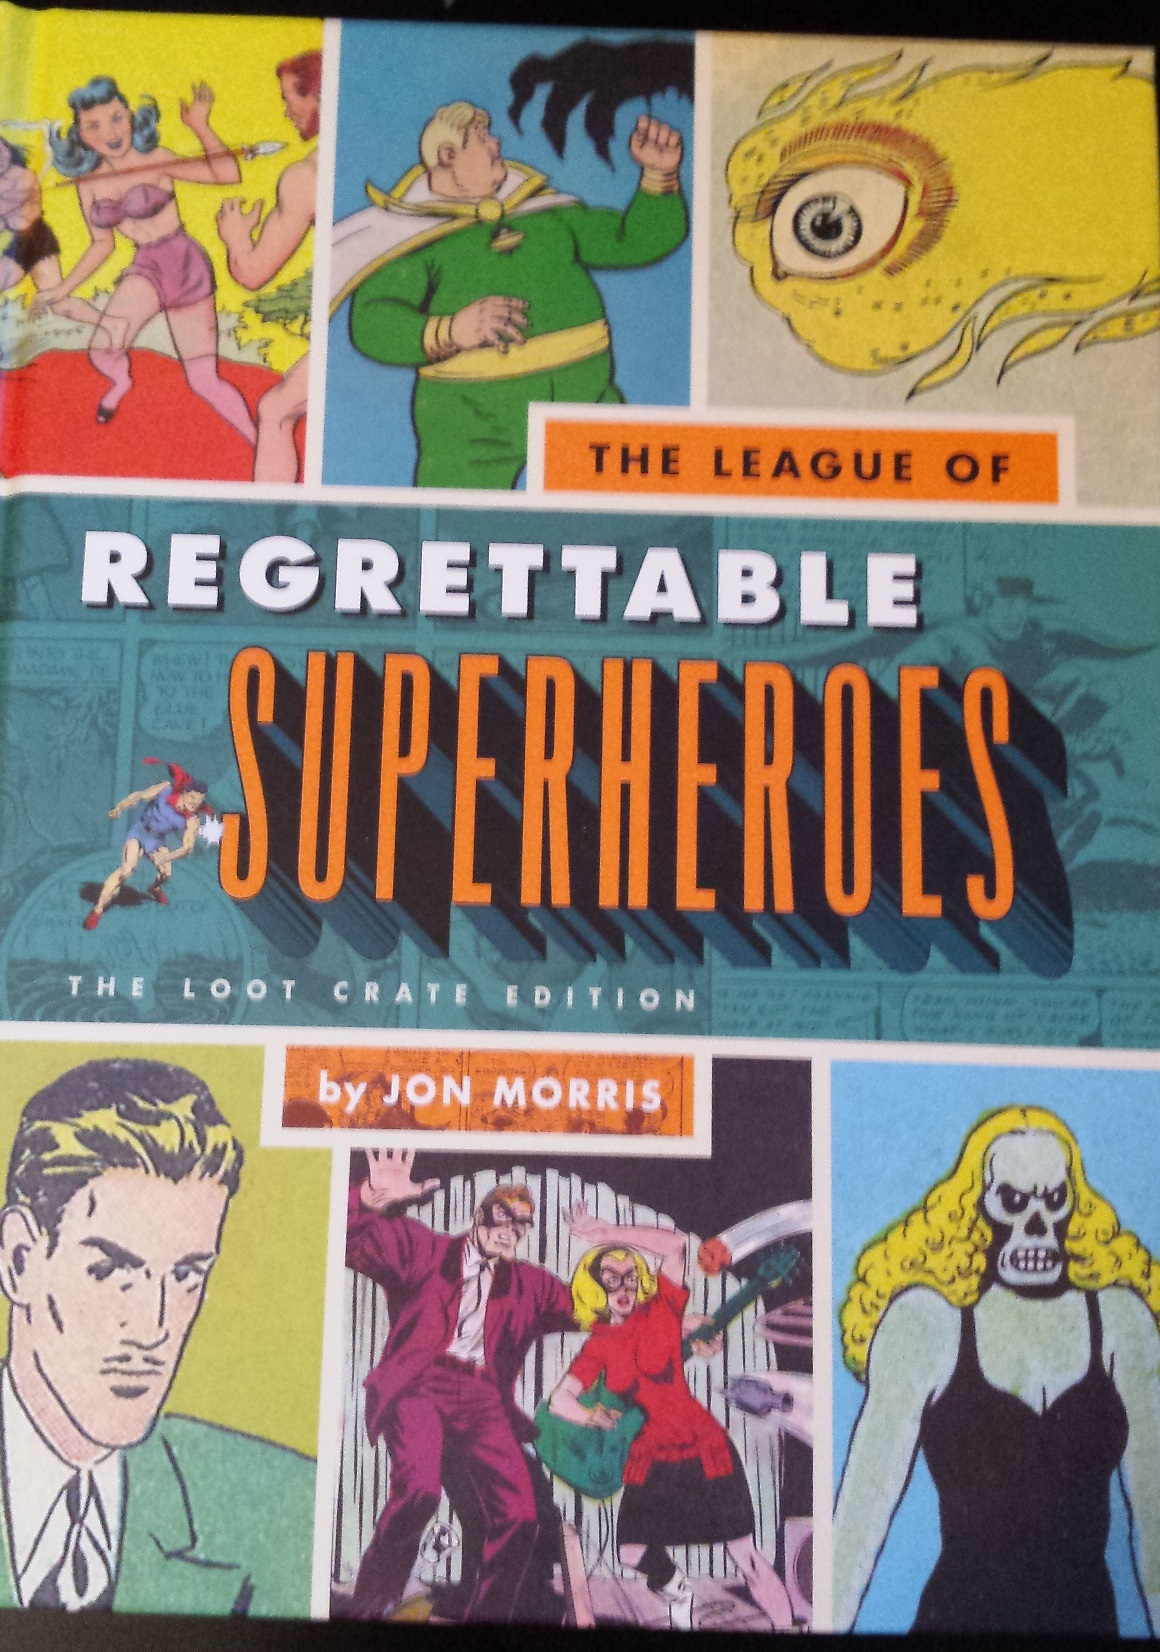 Loot crate! The league of regrettable superheroes